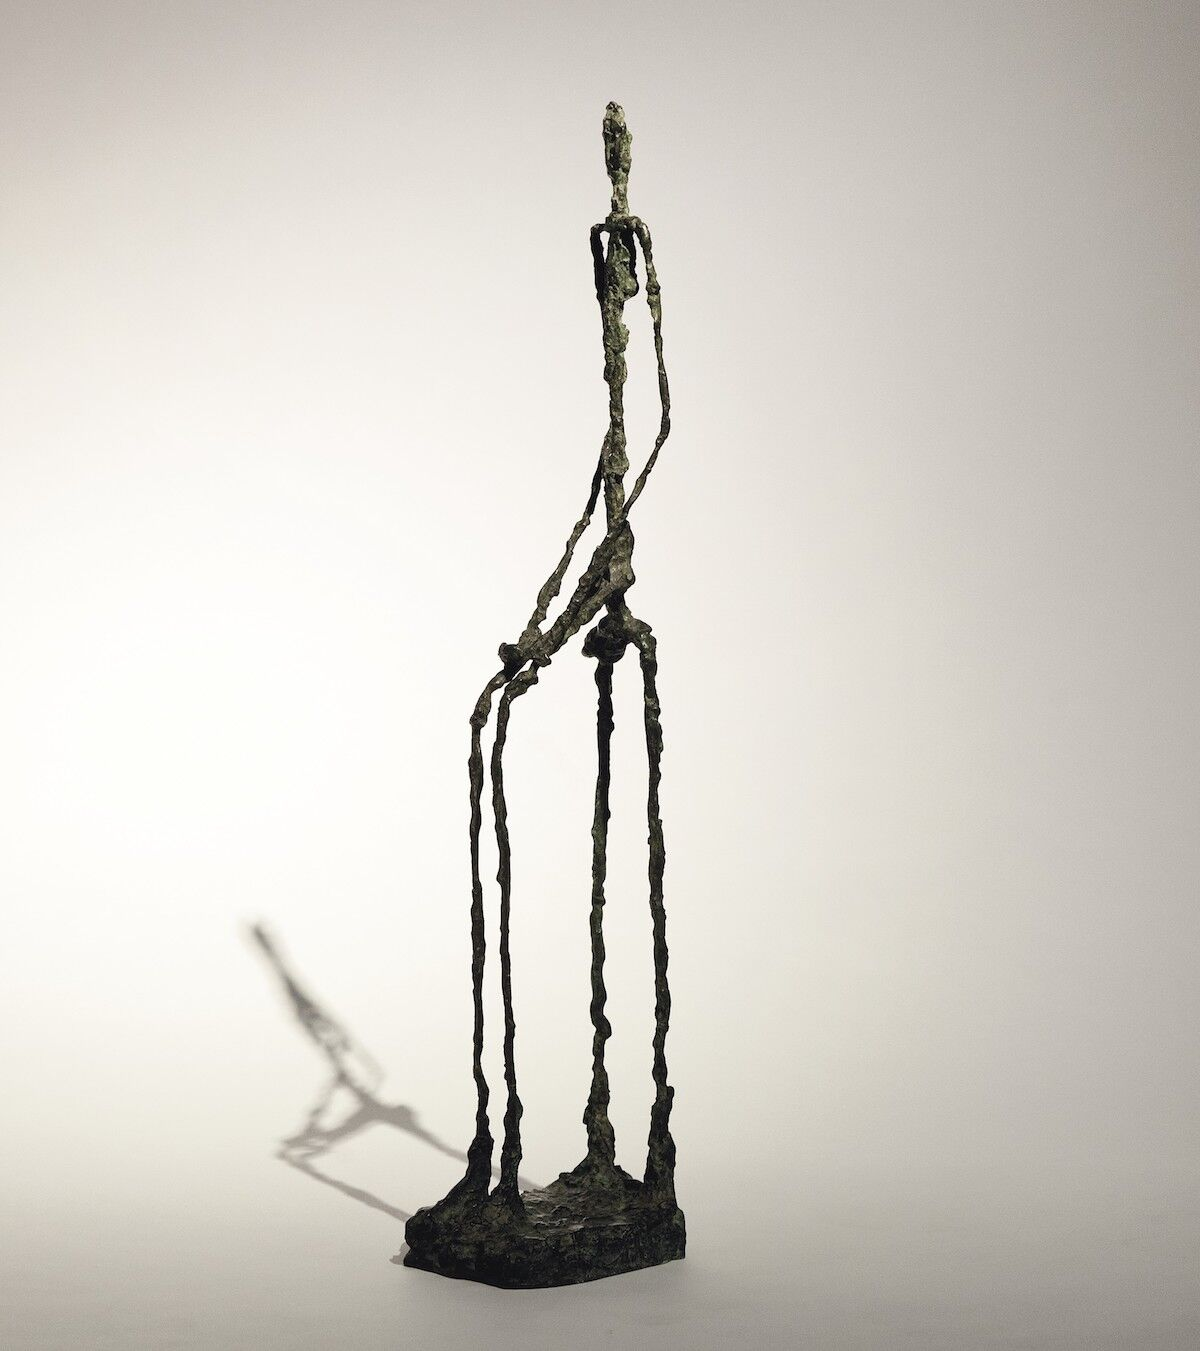 Alberto Giacometti, Femme assise, bronze, conceived in 1949–50, cast in 1957. Est. $14–18 million. Courtesy Christie's